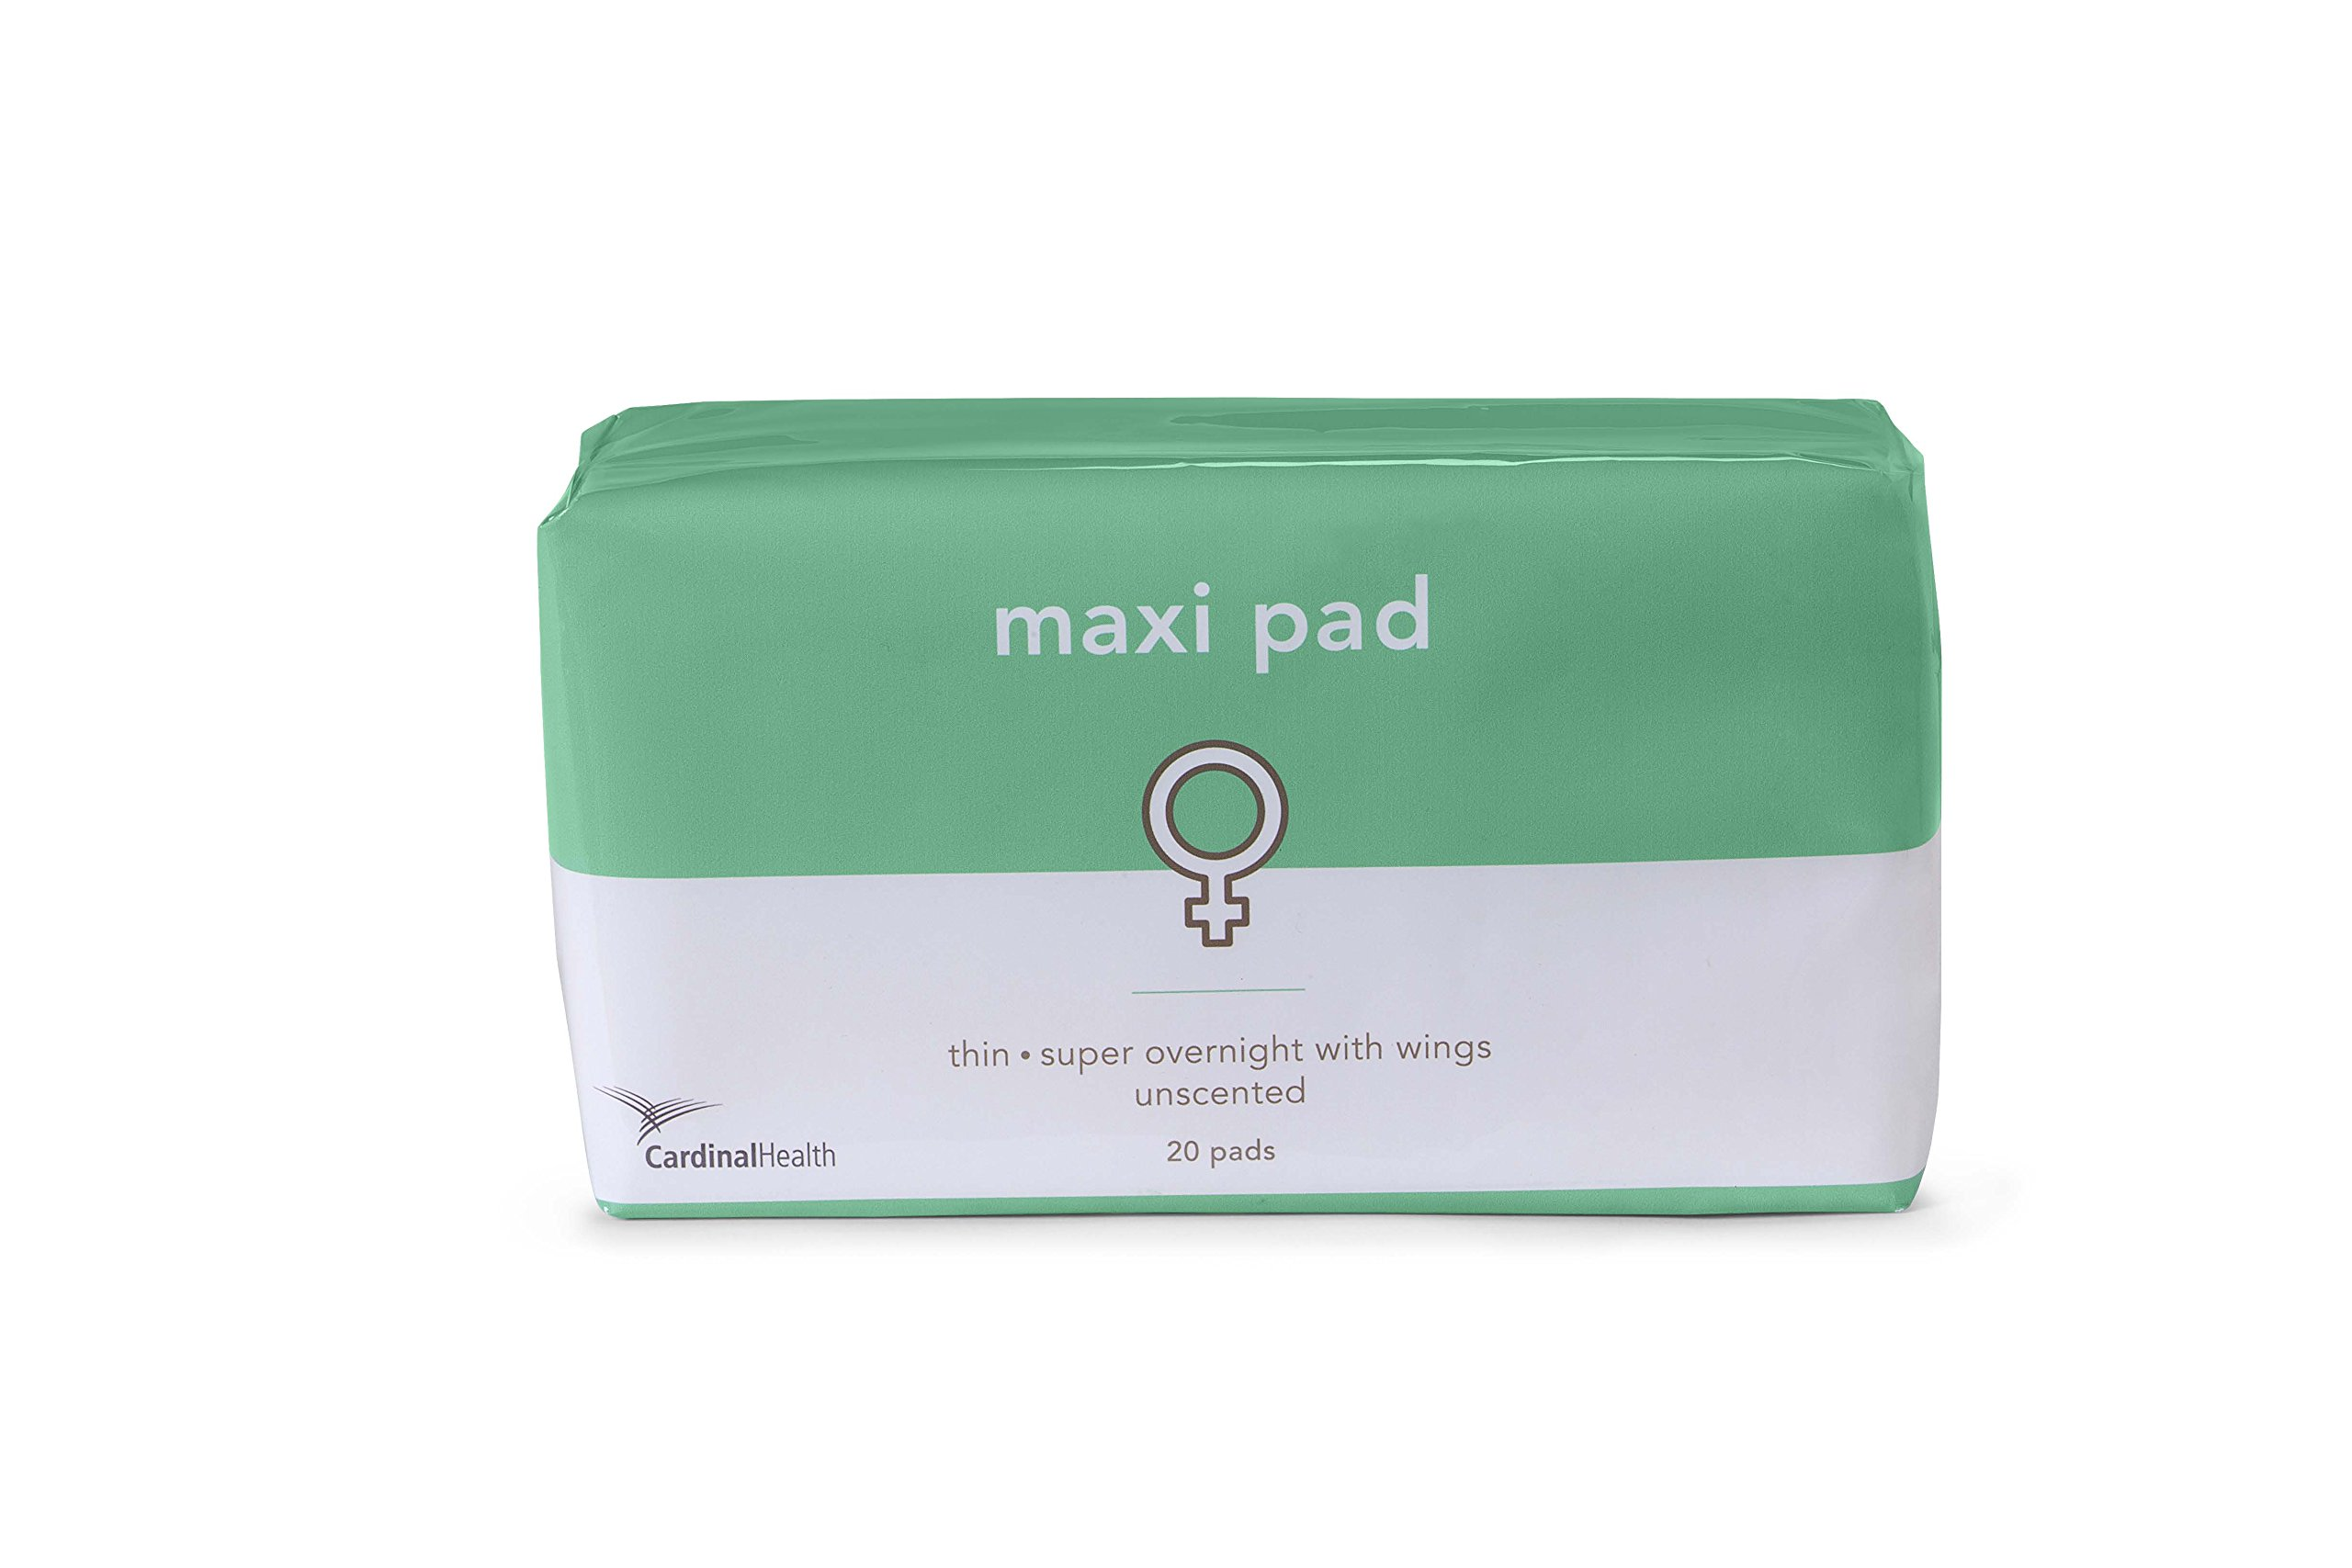 Cardinal Health FH-PADPUR Maxi Pad Heavy Absorbency Overnight Winged Adhesive Unscented, Pack of 20